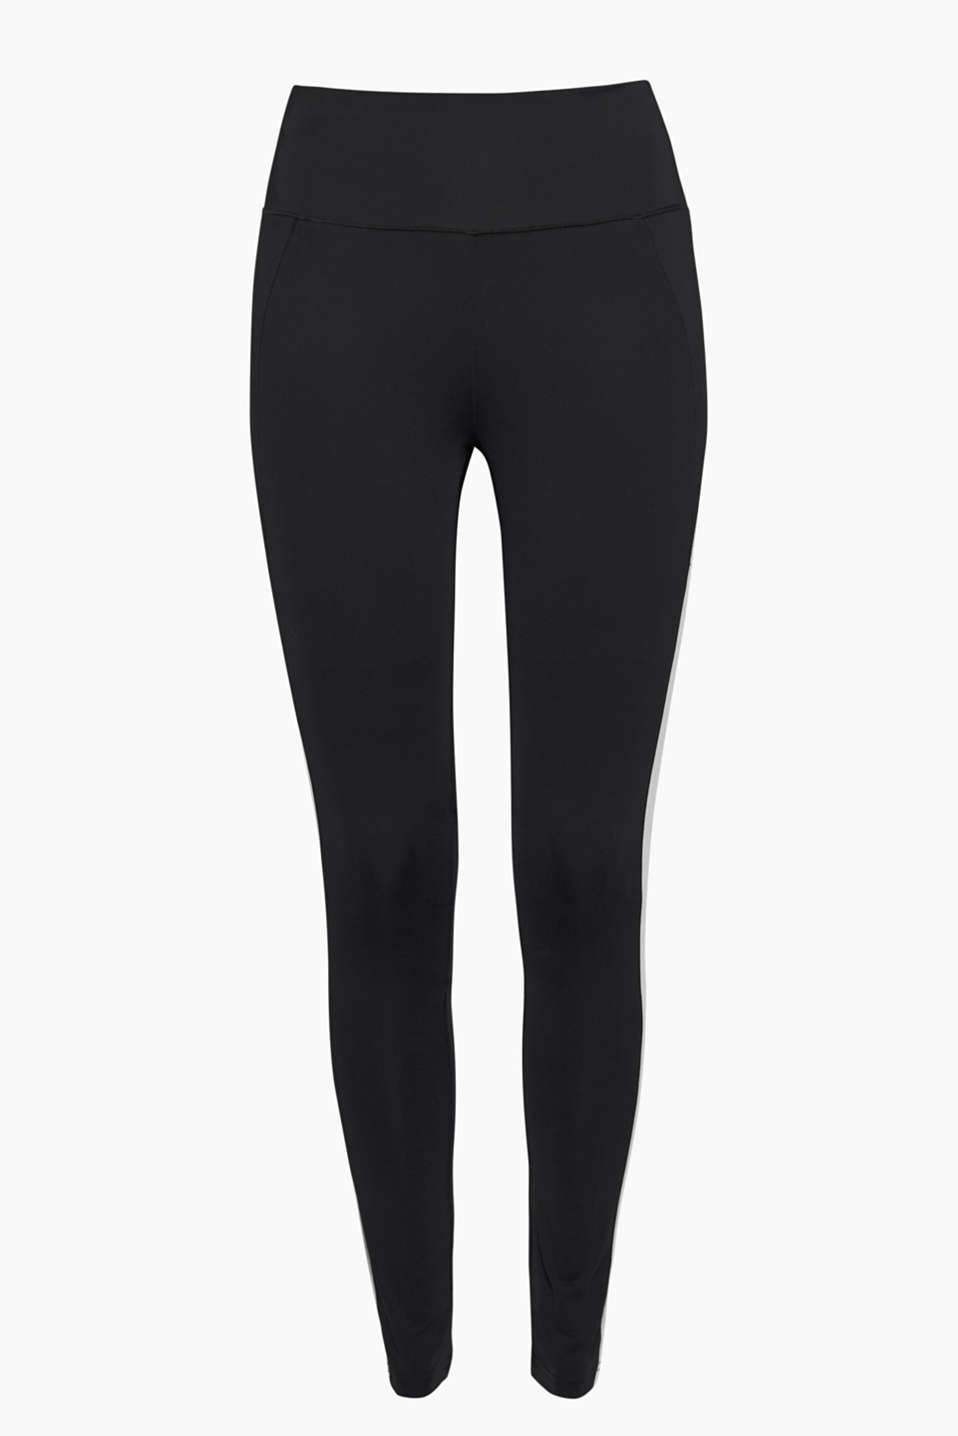 The flattering colour block stripes on these E-DRY active leggings will put a swing in your step!